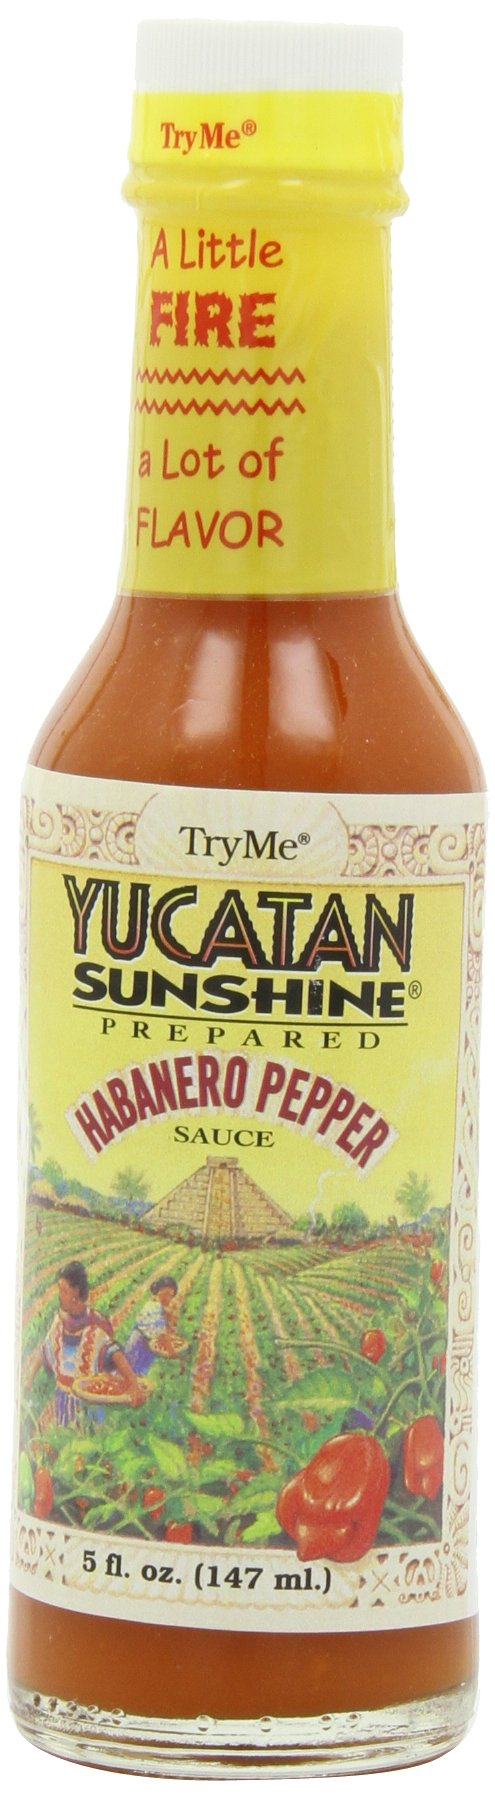 Try Me Yucatan Sunshine Habanero Pepper Sauce, 5-Ounce Bottles (Pack of 6)